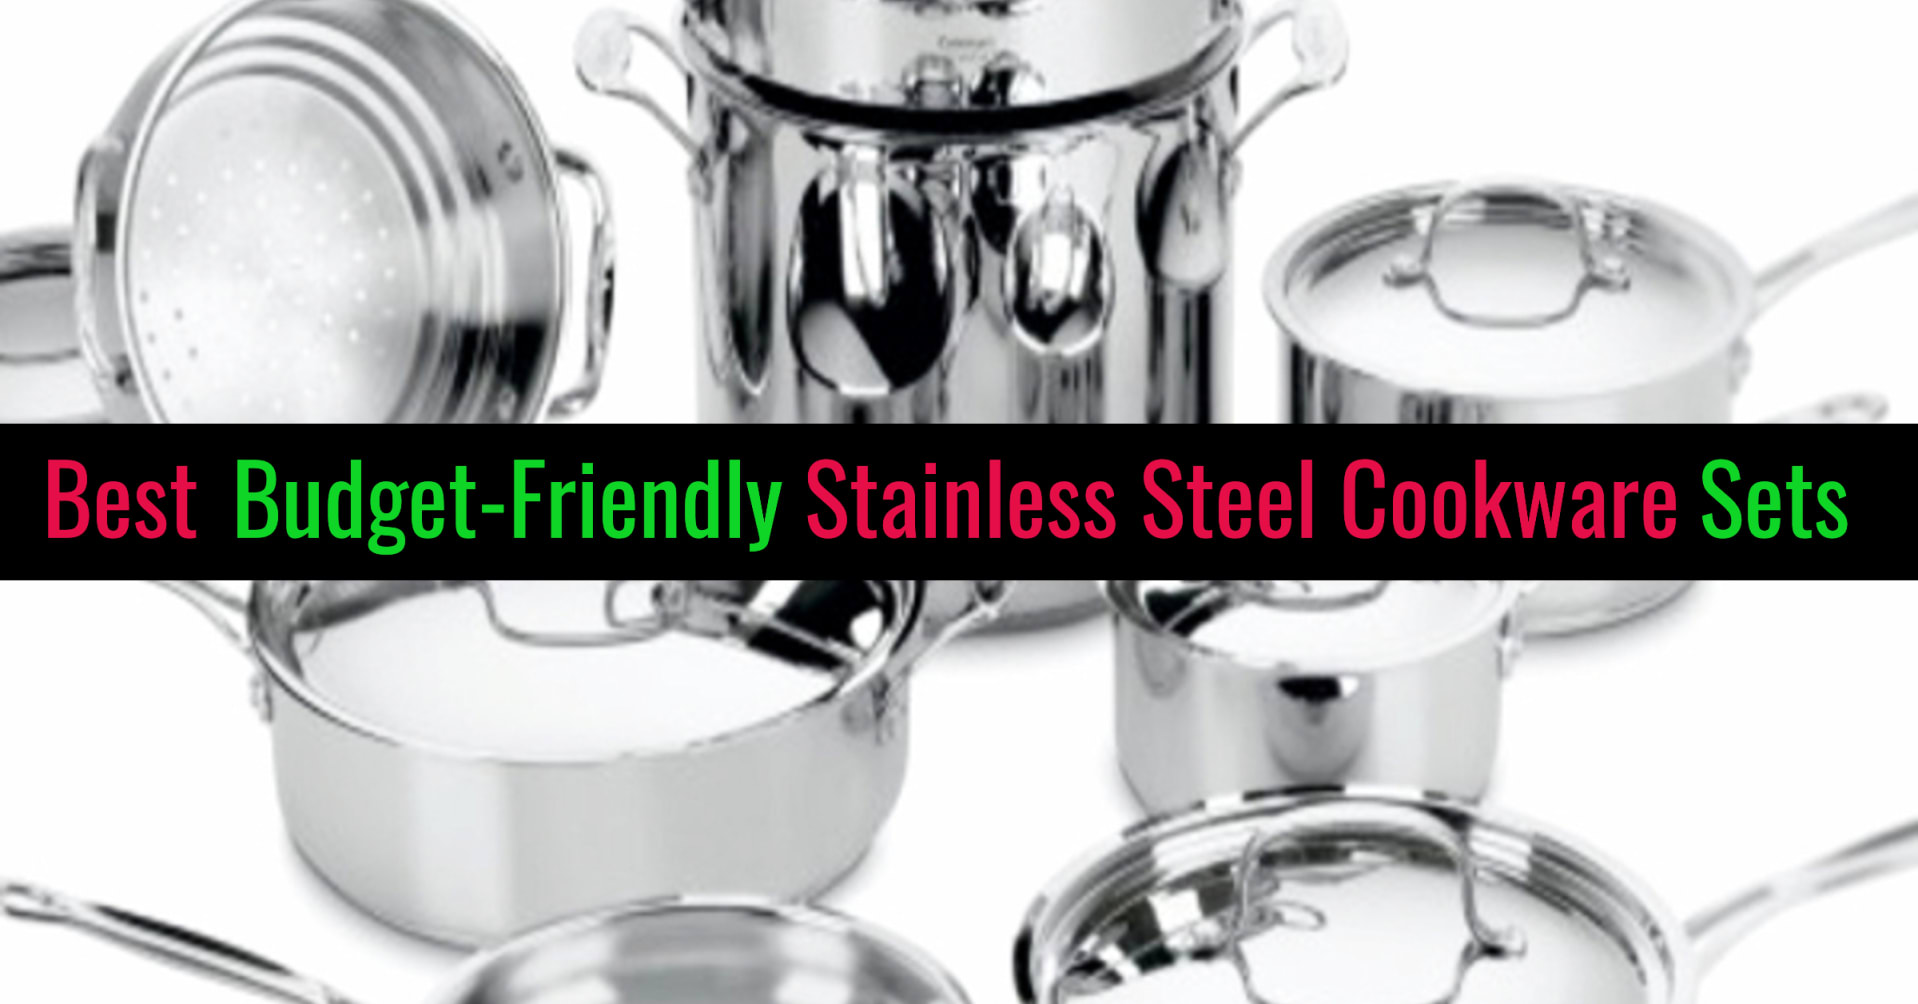 Best stainless steel cookware sets on a budget - stainless steel cookware pros and cons - best stainless steel cookware for the money